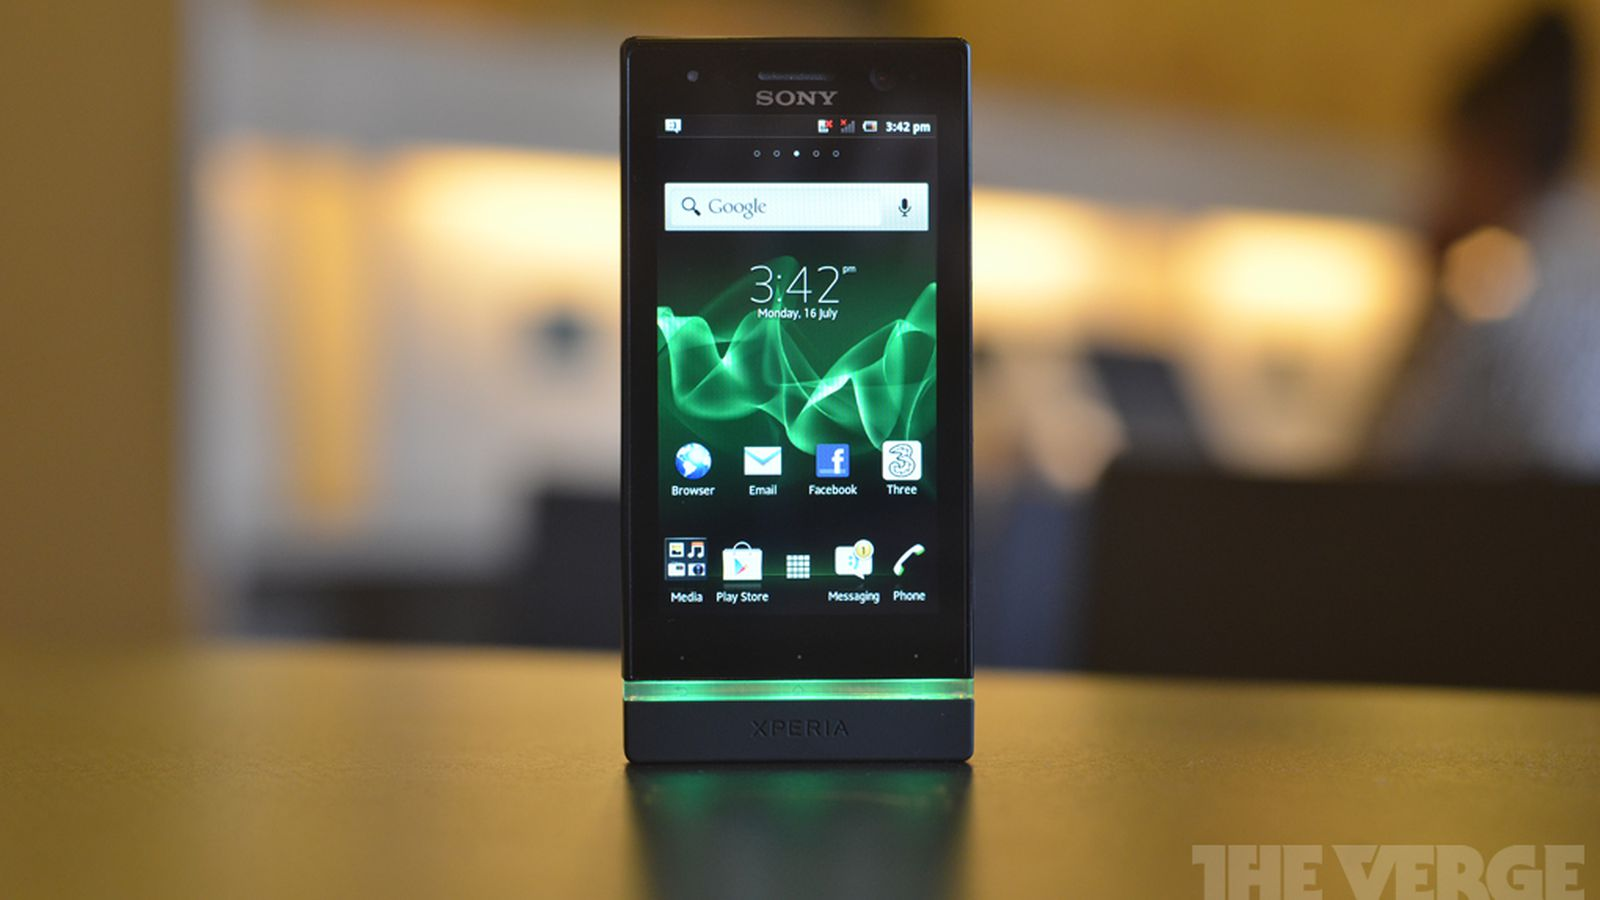 sony xperia tl making its way to atts 4g lte lineup in the ...